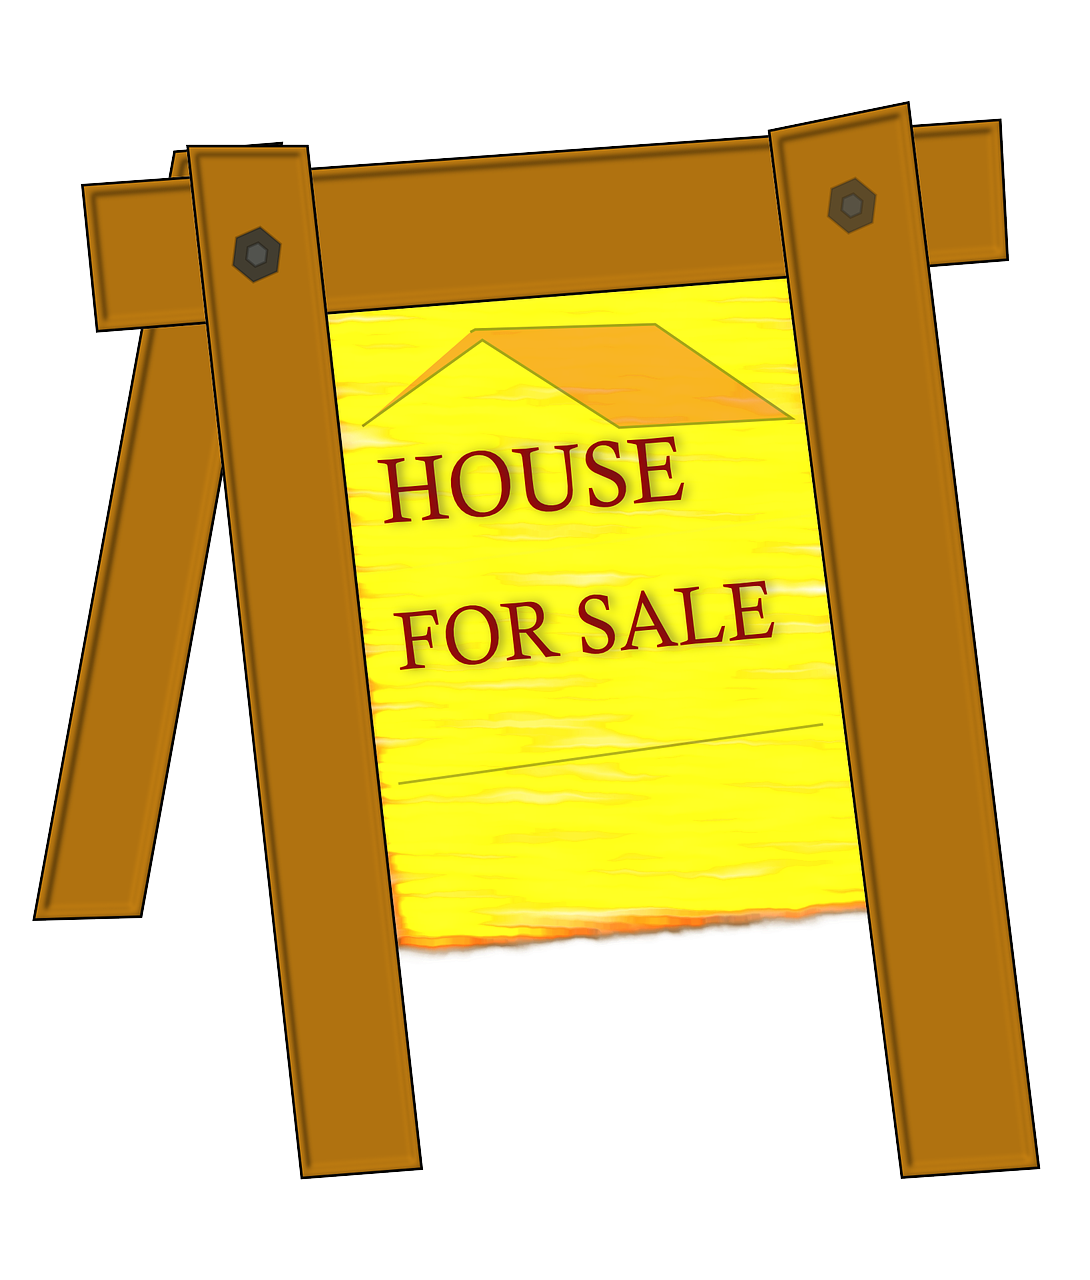 classified website list in in internet tags top classifieds n classifieds post ads for for real estate search job out registration city based ads ad listing